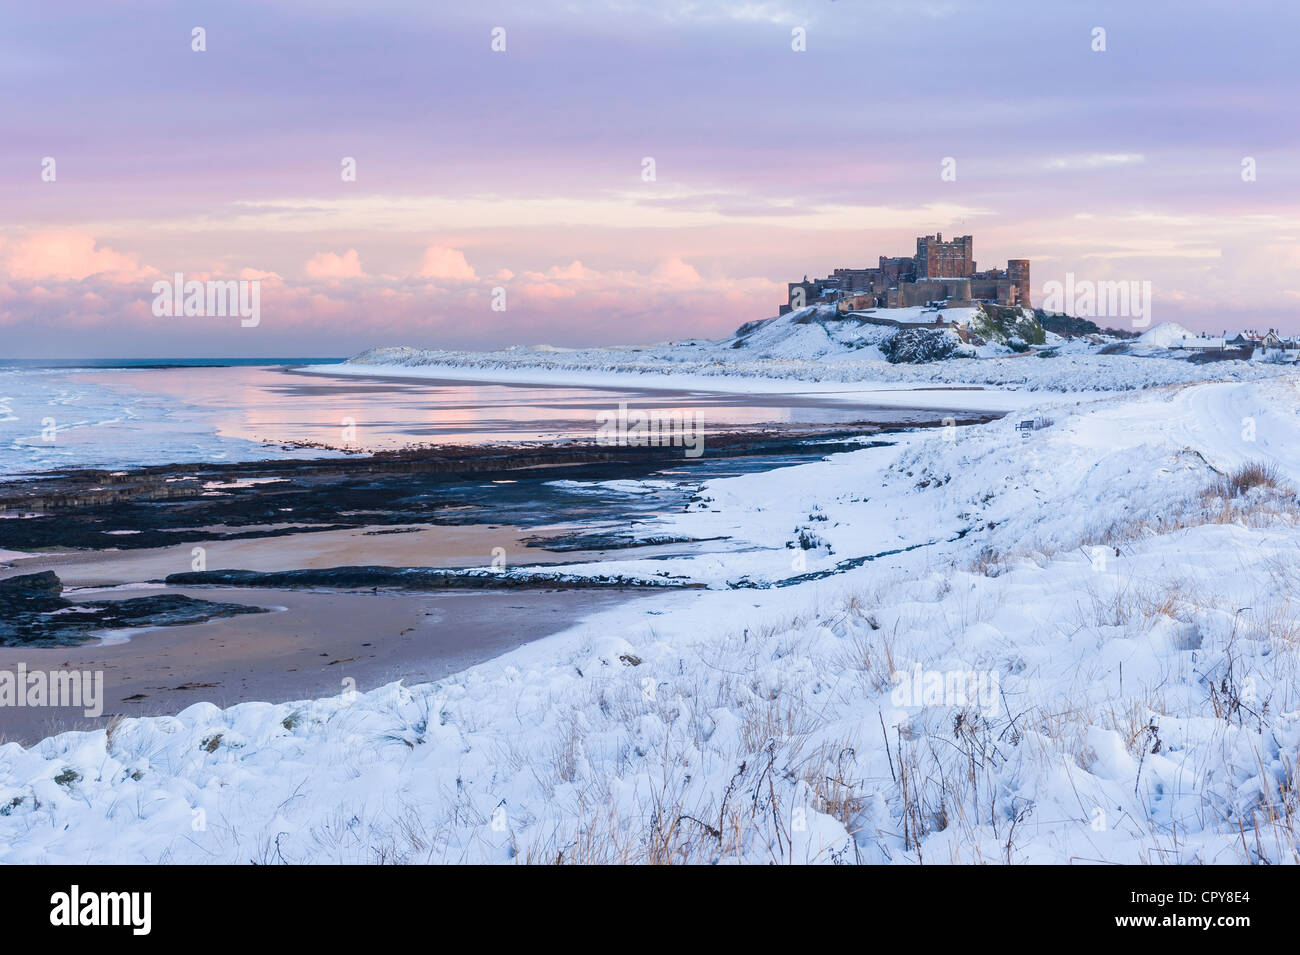 A Snow Covered Winter Scene At Sunset Bamburgh Castle